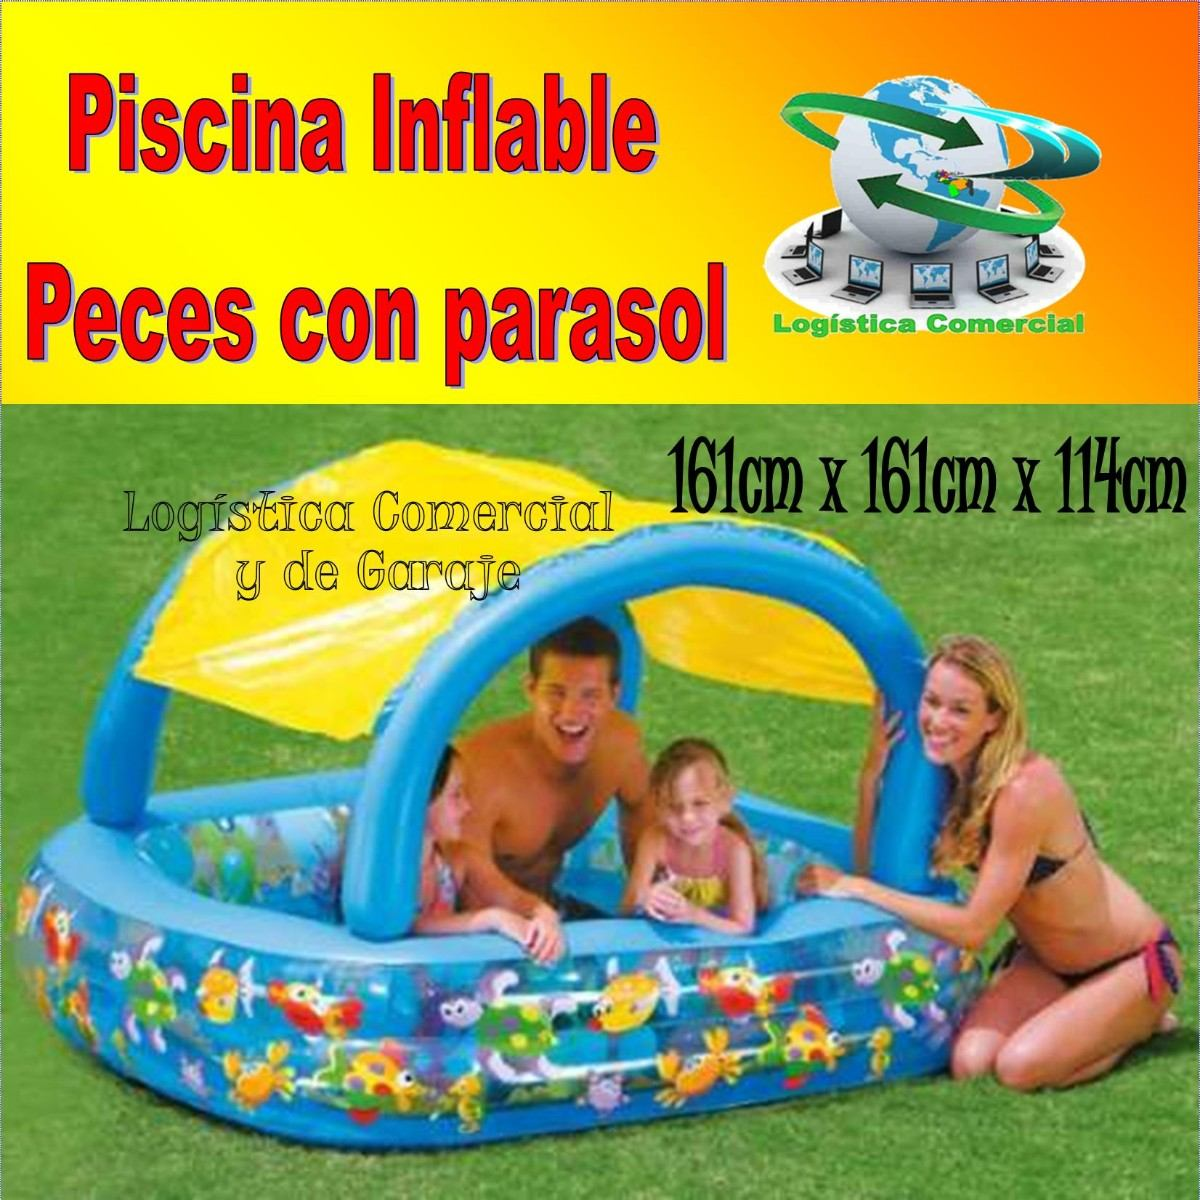 Piscinas inflables para beb s imagui for Piscina inflable ninos